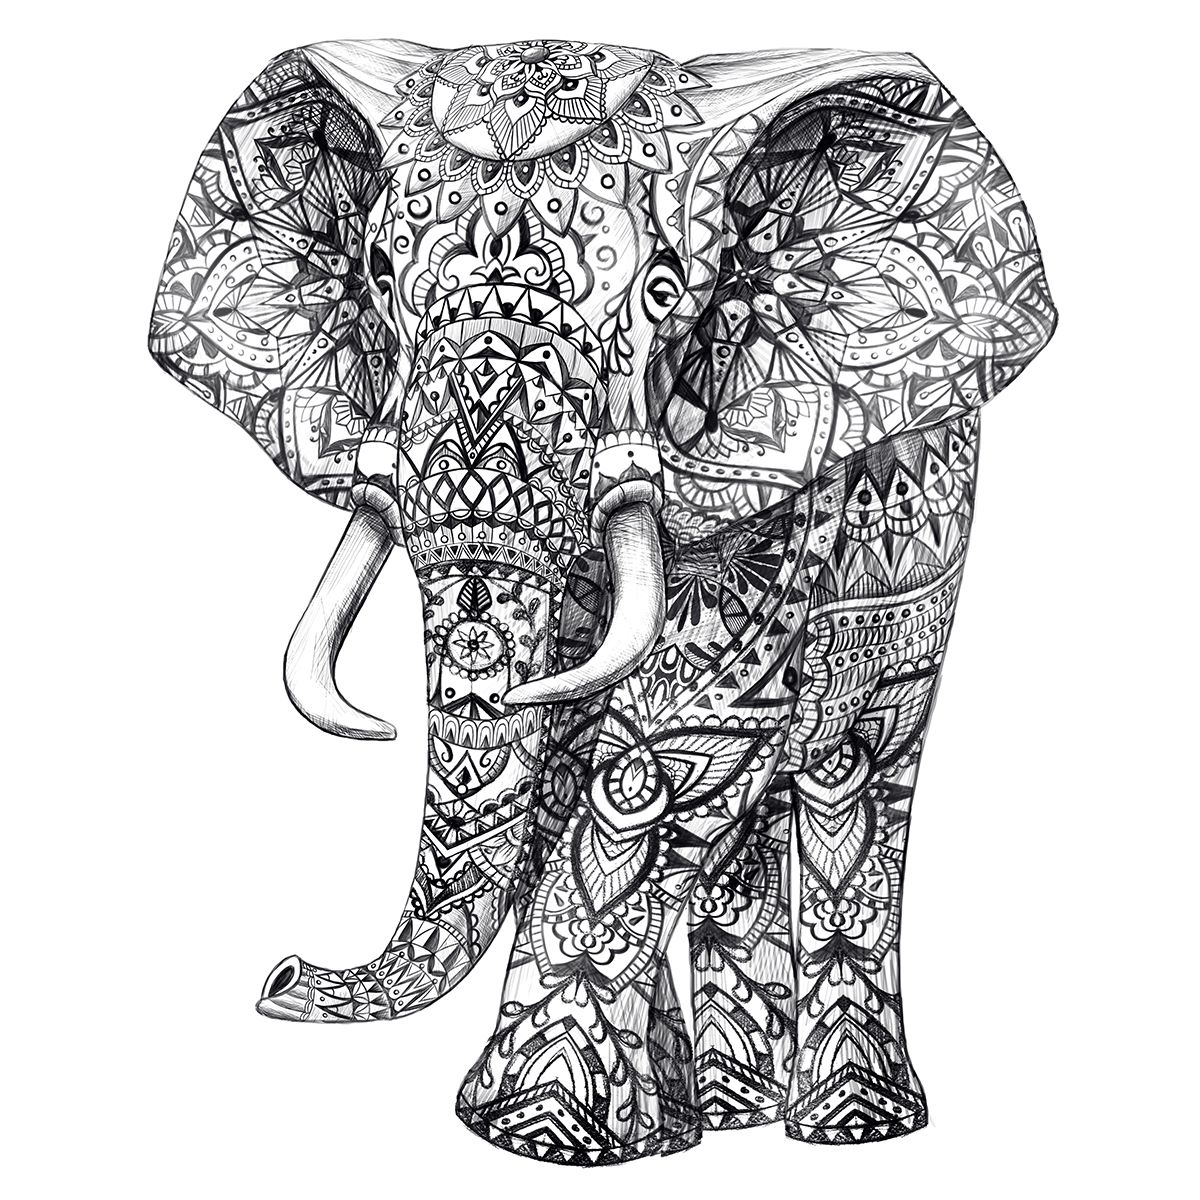 elephant pen hand drawing aztec pattern detail art graphic